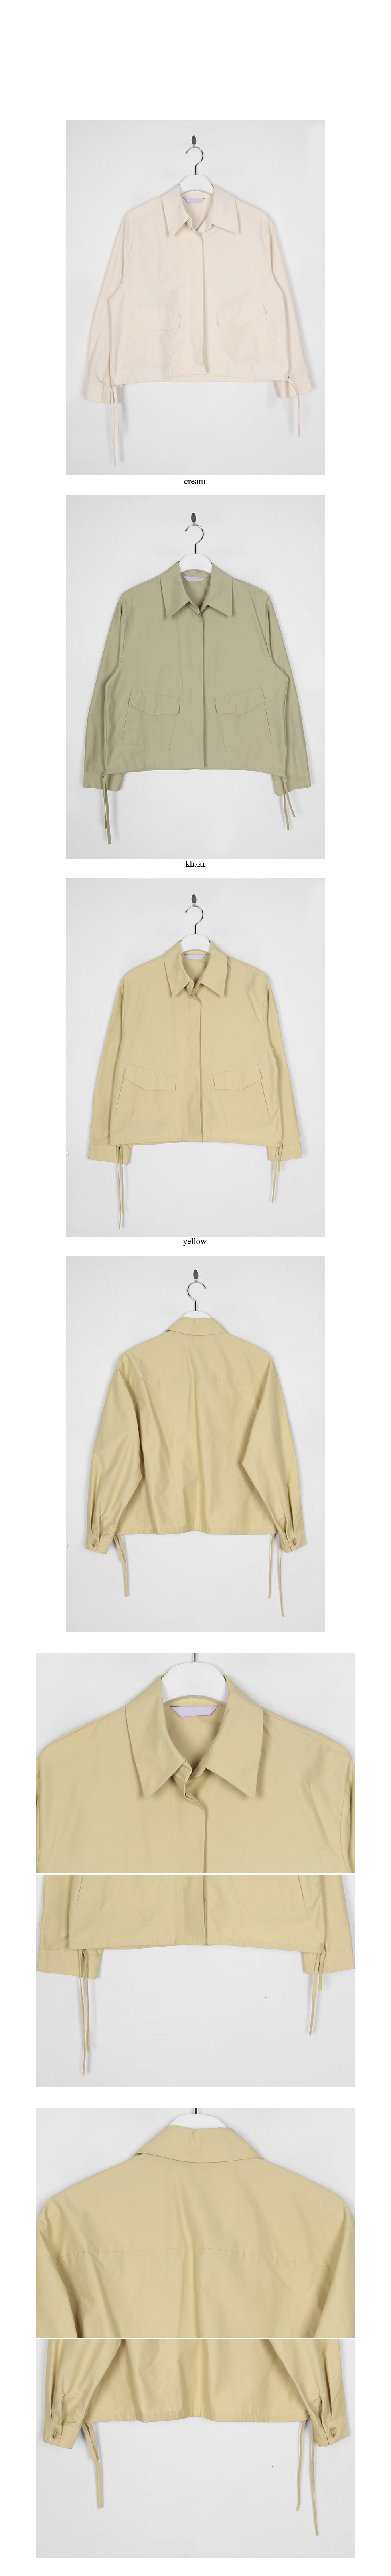 down collar minimal jacekt